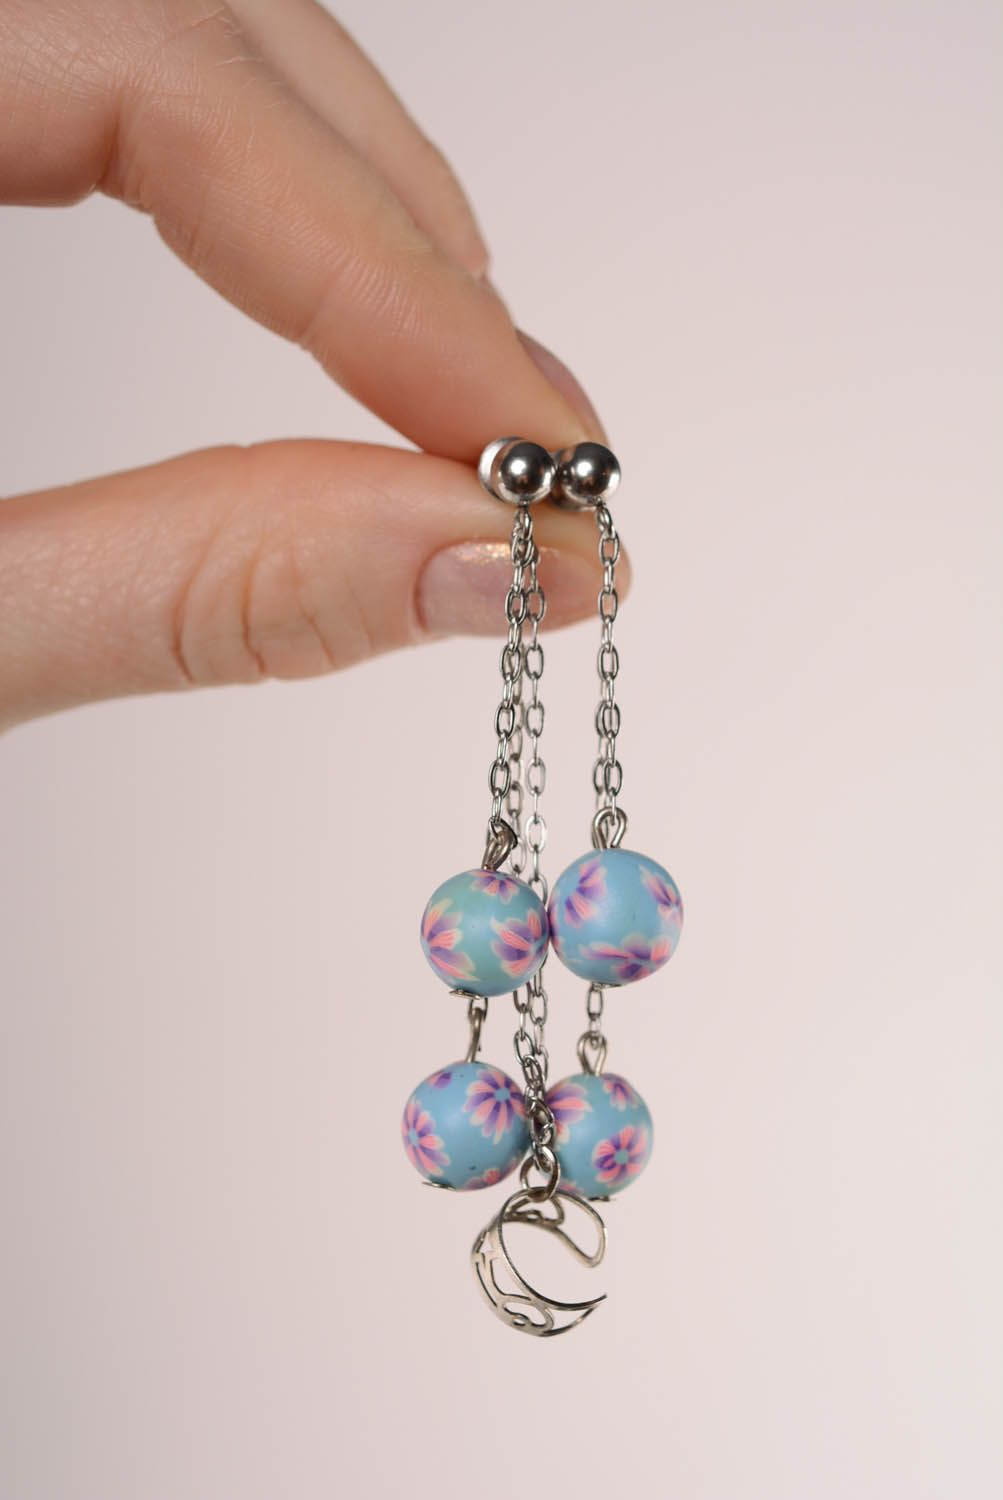 Earrings cuffs Courage photo 4